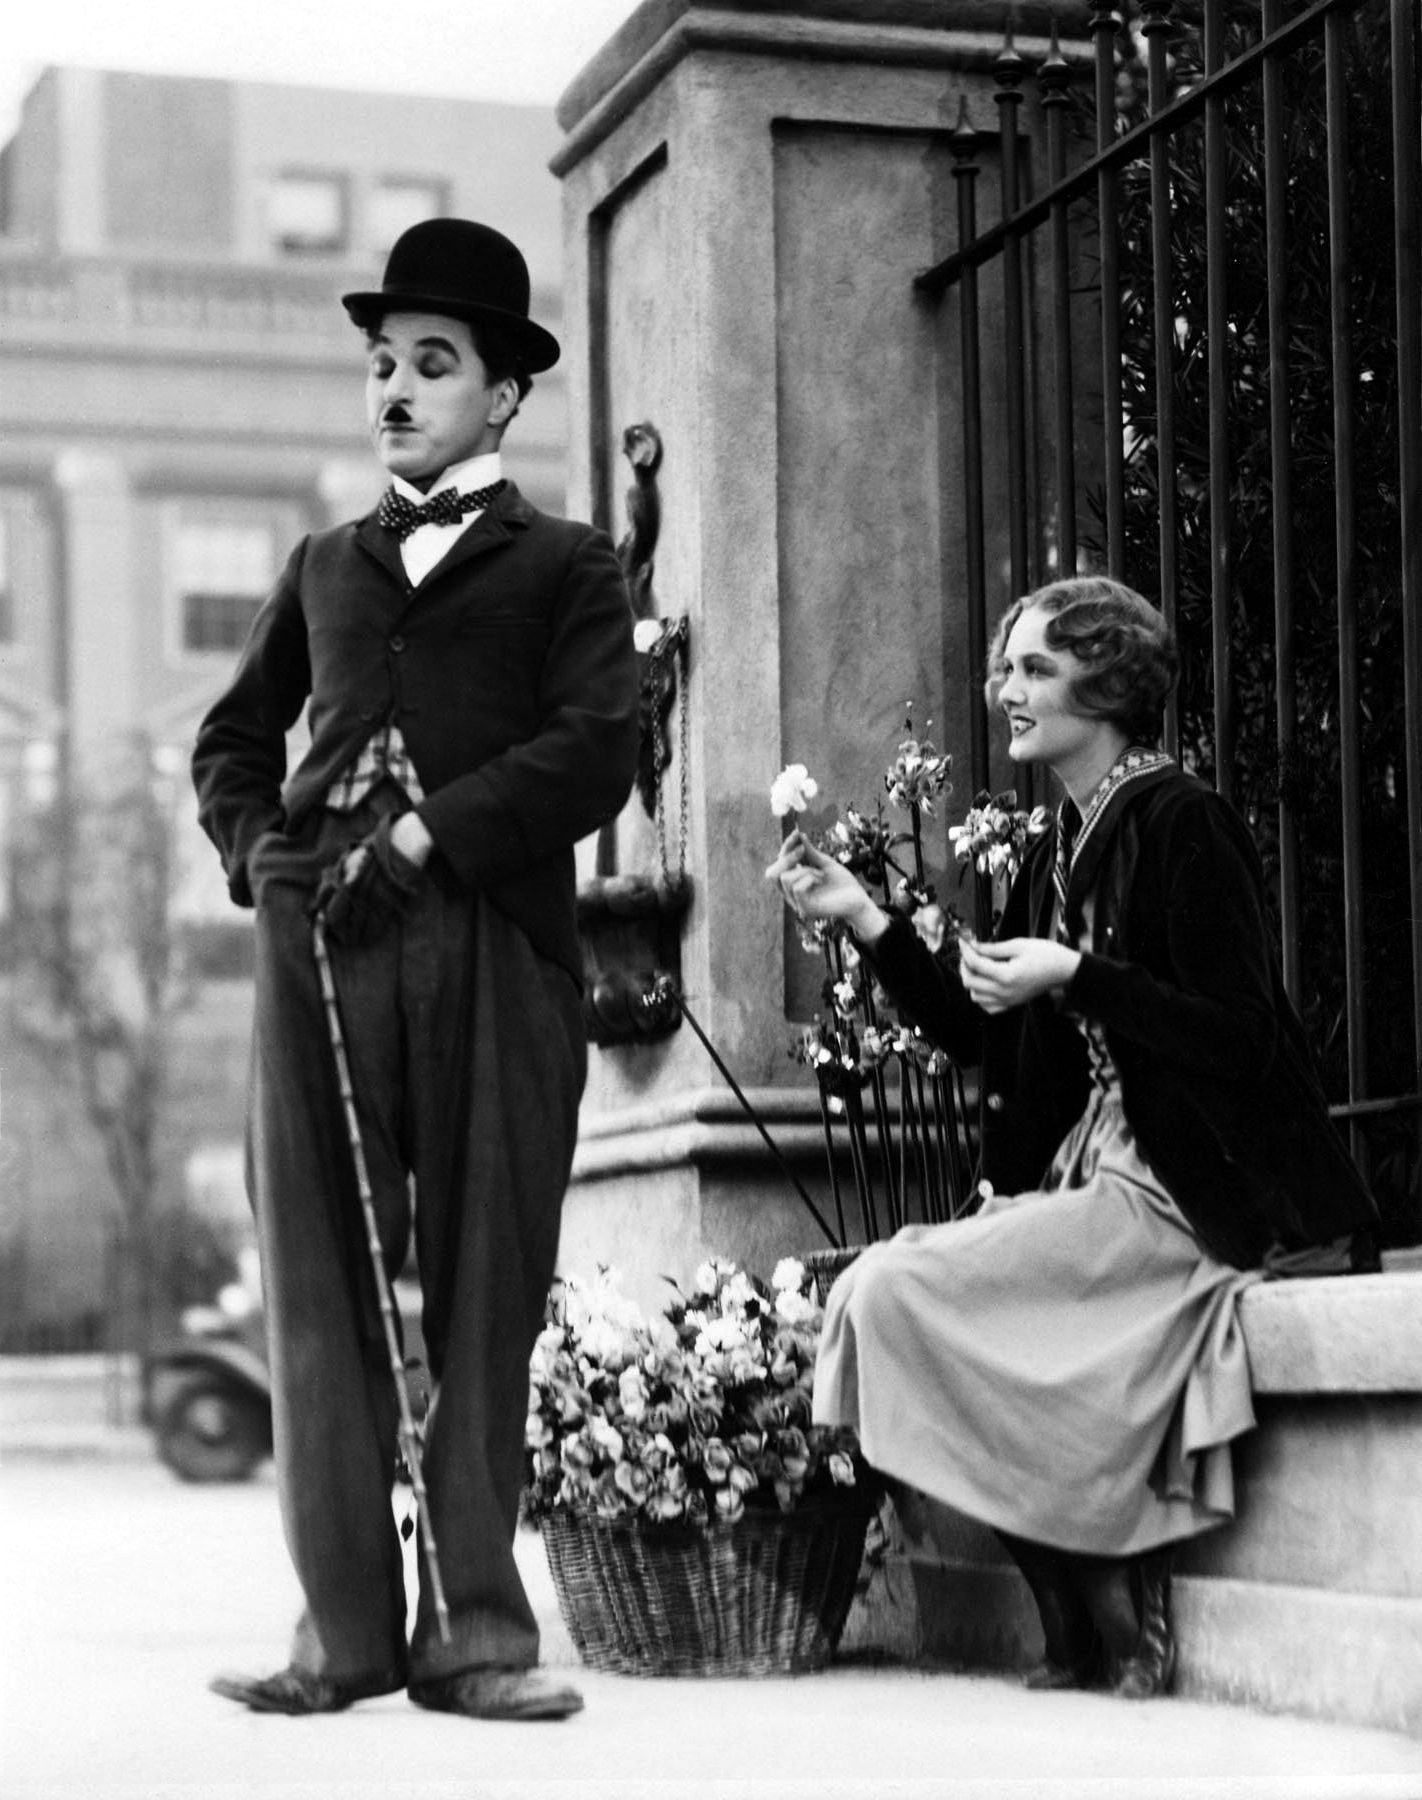 Charlie Chaplin and Virginia Cherrill in City Lights, 1931